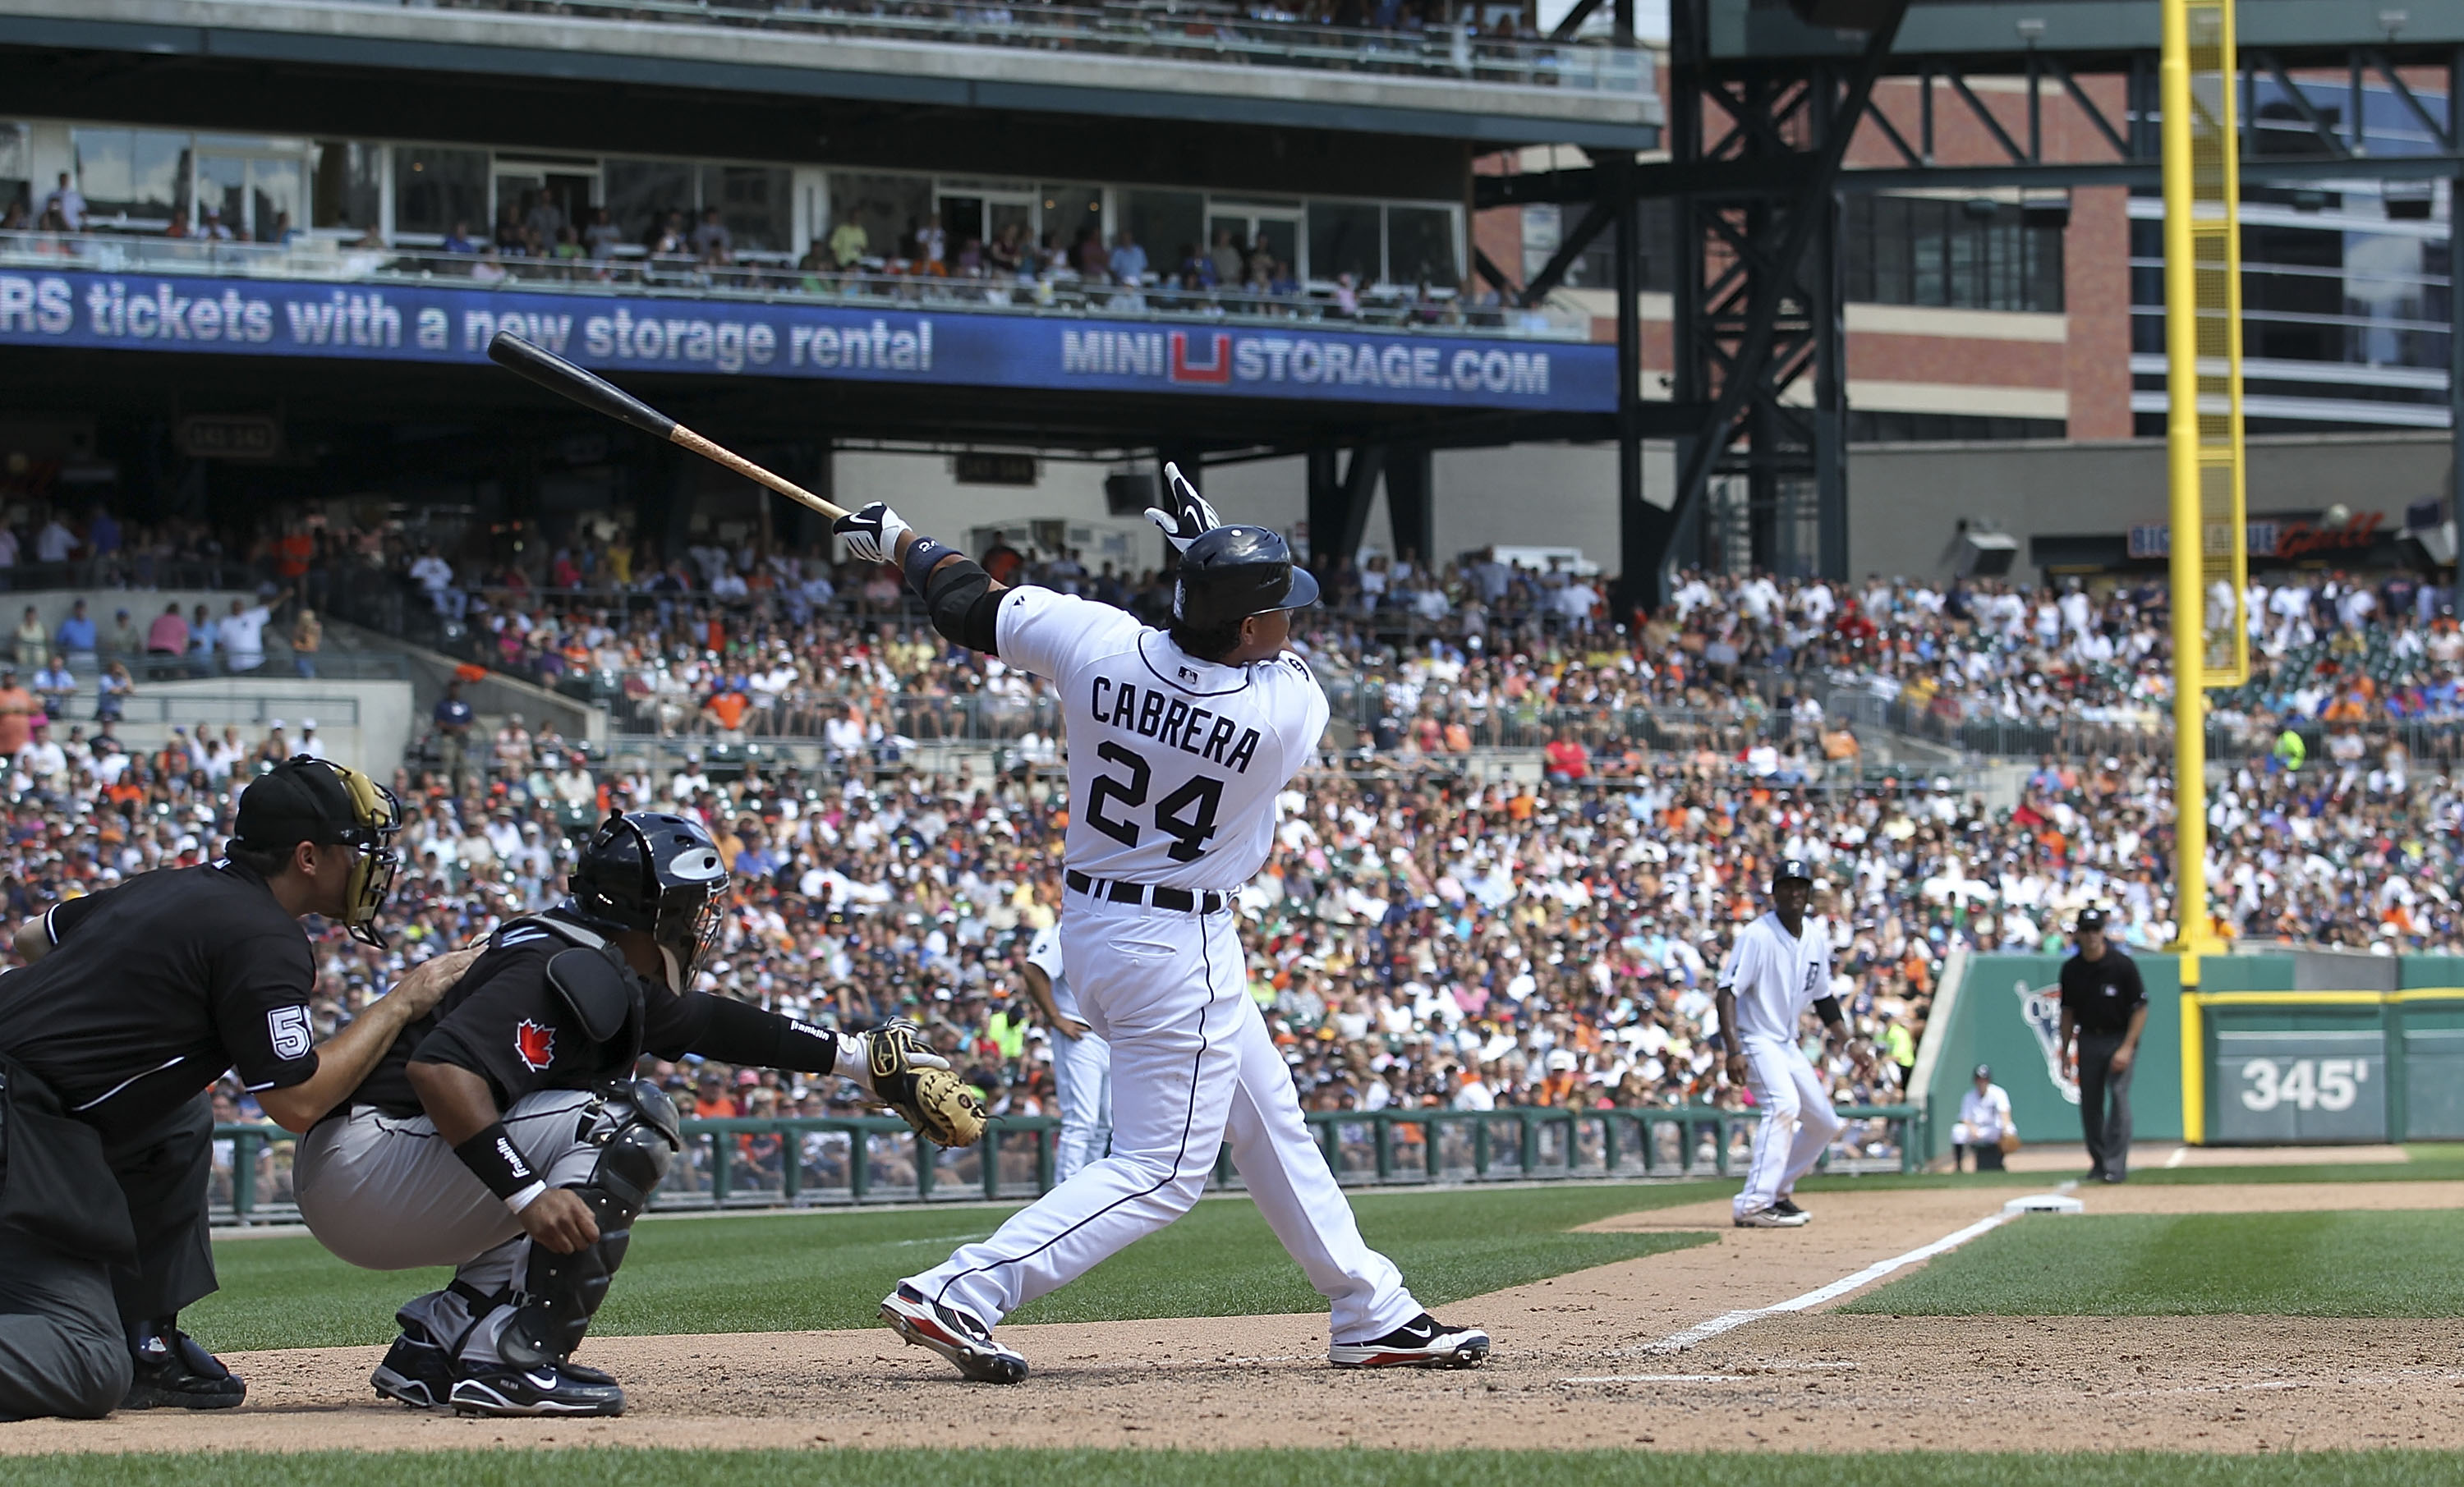 DETROIT - JULY 25:  Miguel Cabrera #24 of the Detroit Tigers bats during the first inning against the  Toronto Blue Jays on July 25, 2010 at Comerica Park in Detroit, Michigan. The Blue Jays defeated the Tigers 5-3.  (Photo by Leon Halip/Getty Images)